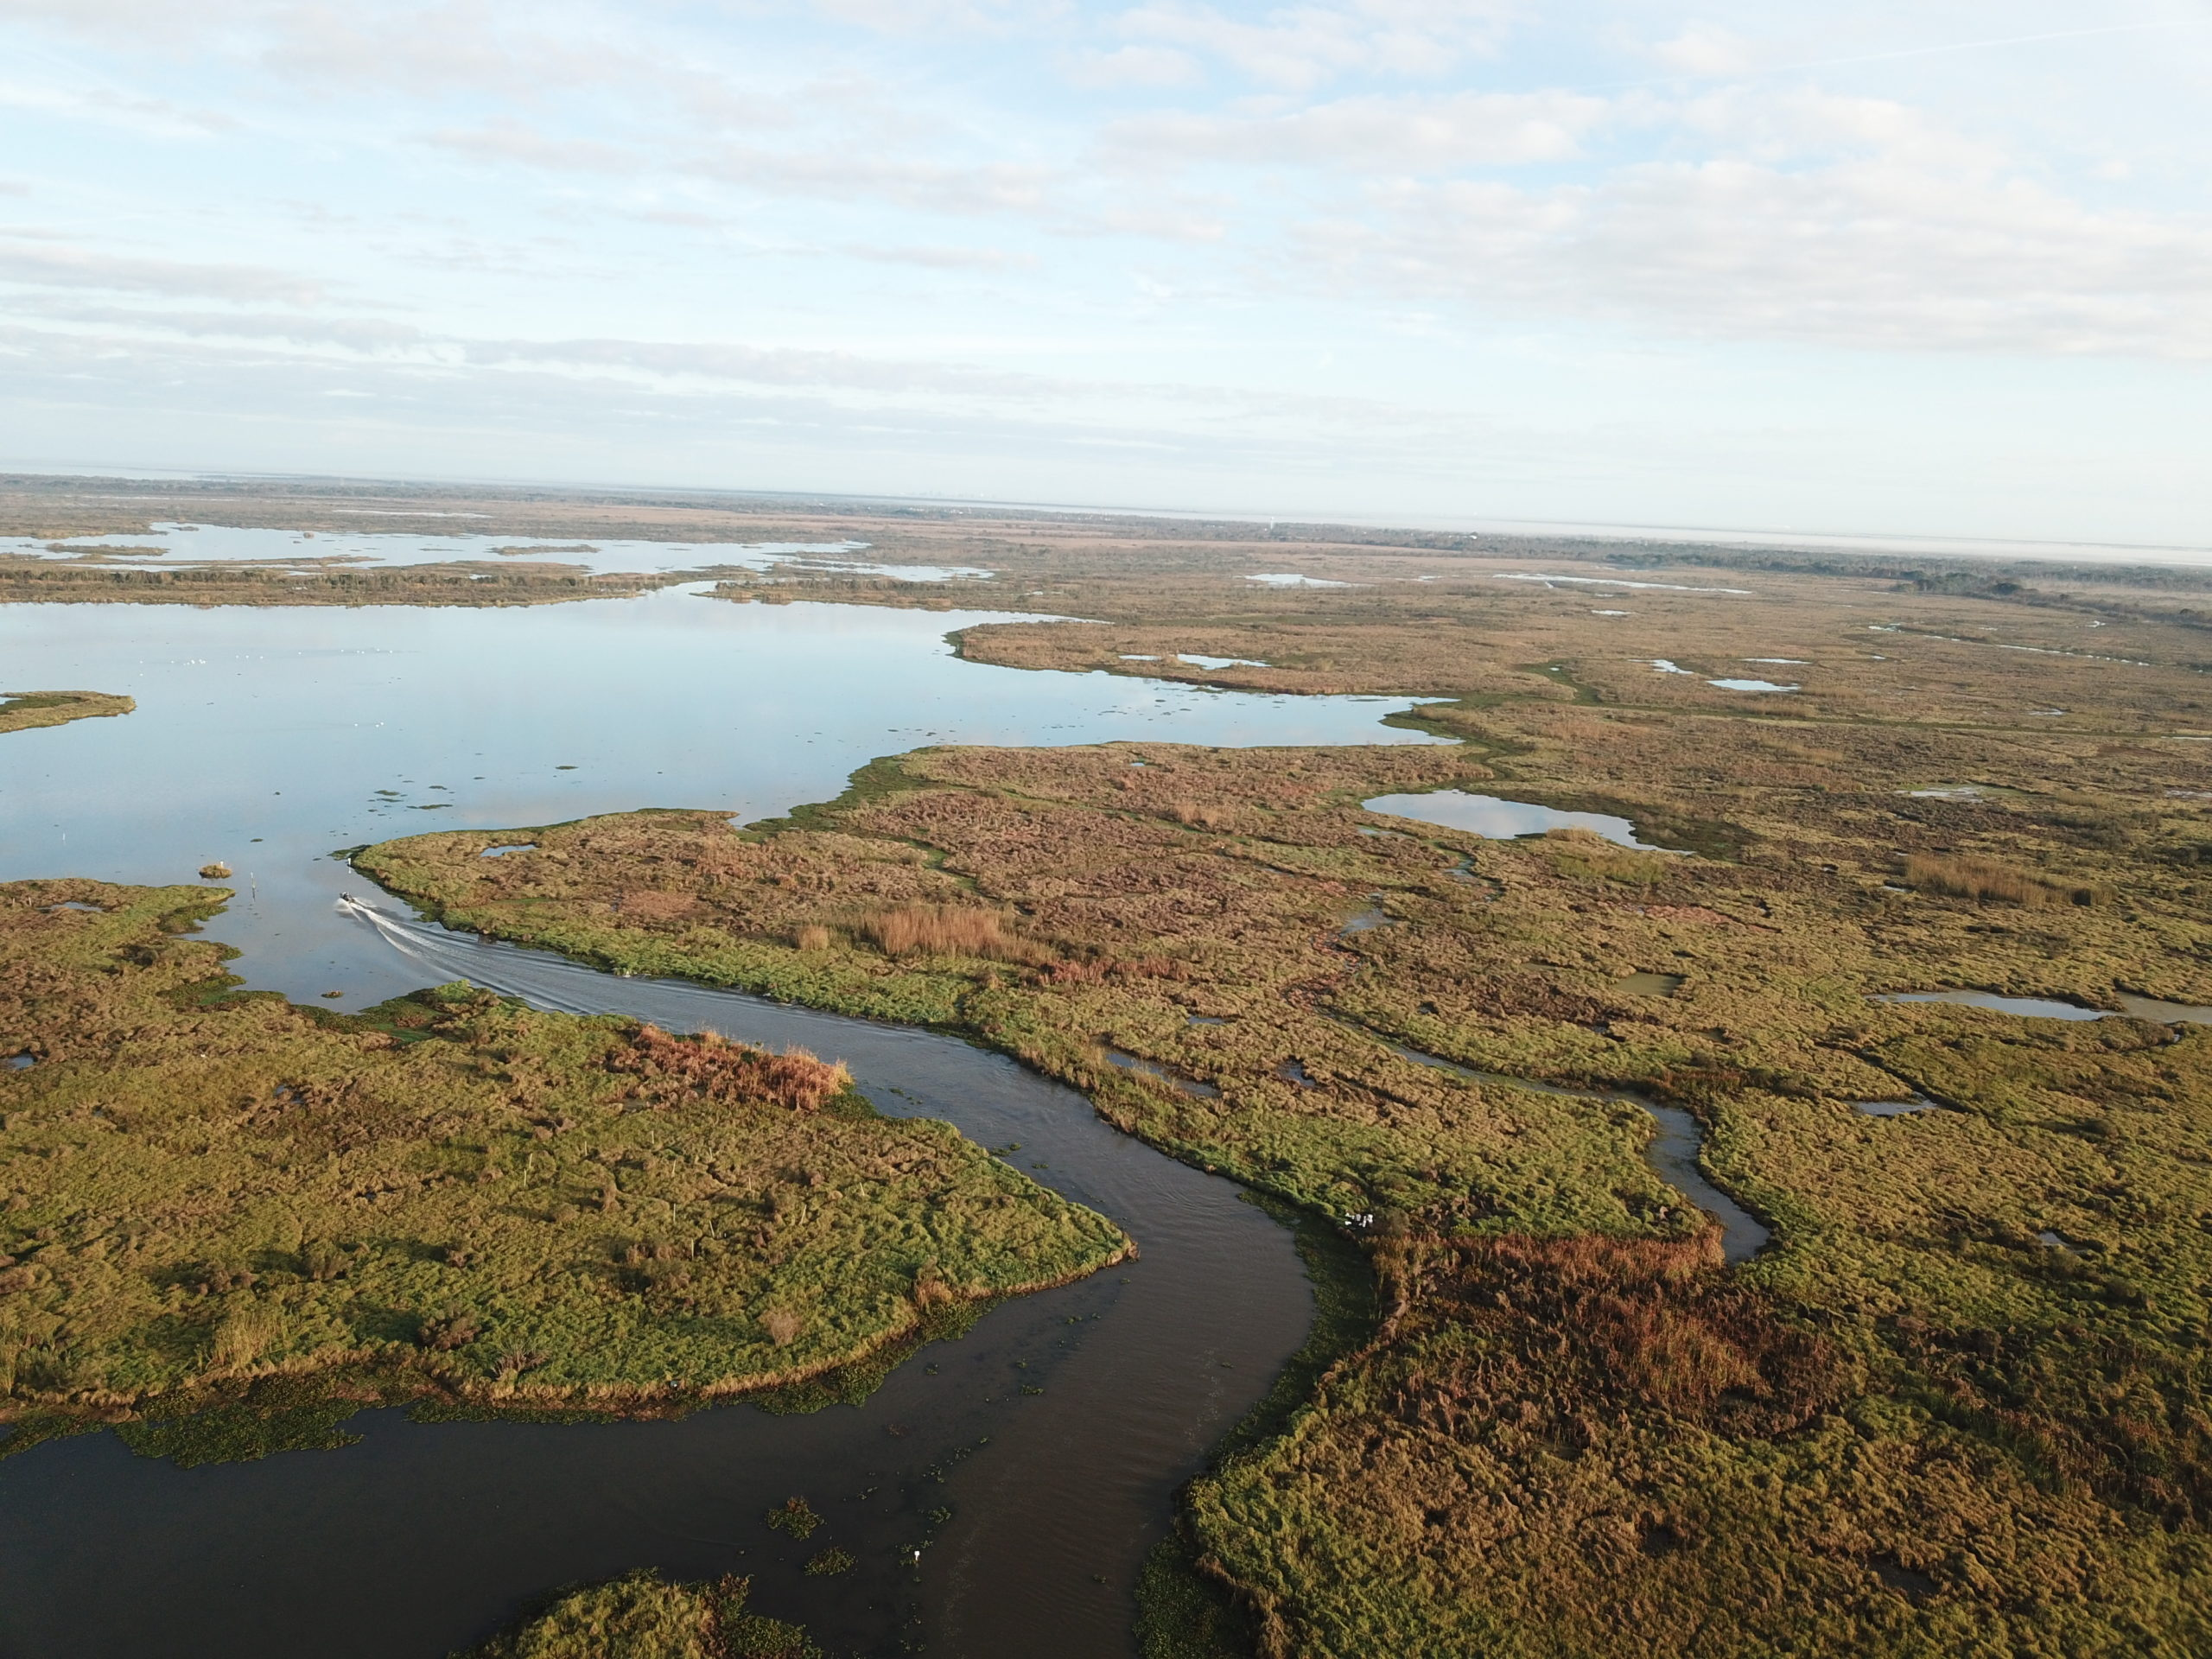 Carbon storage, hurricanes and history: The importance of preserving coastal wetlands